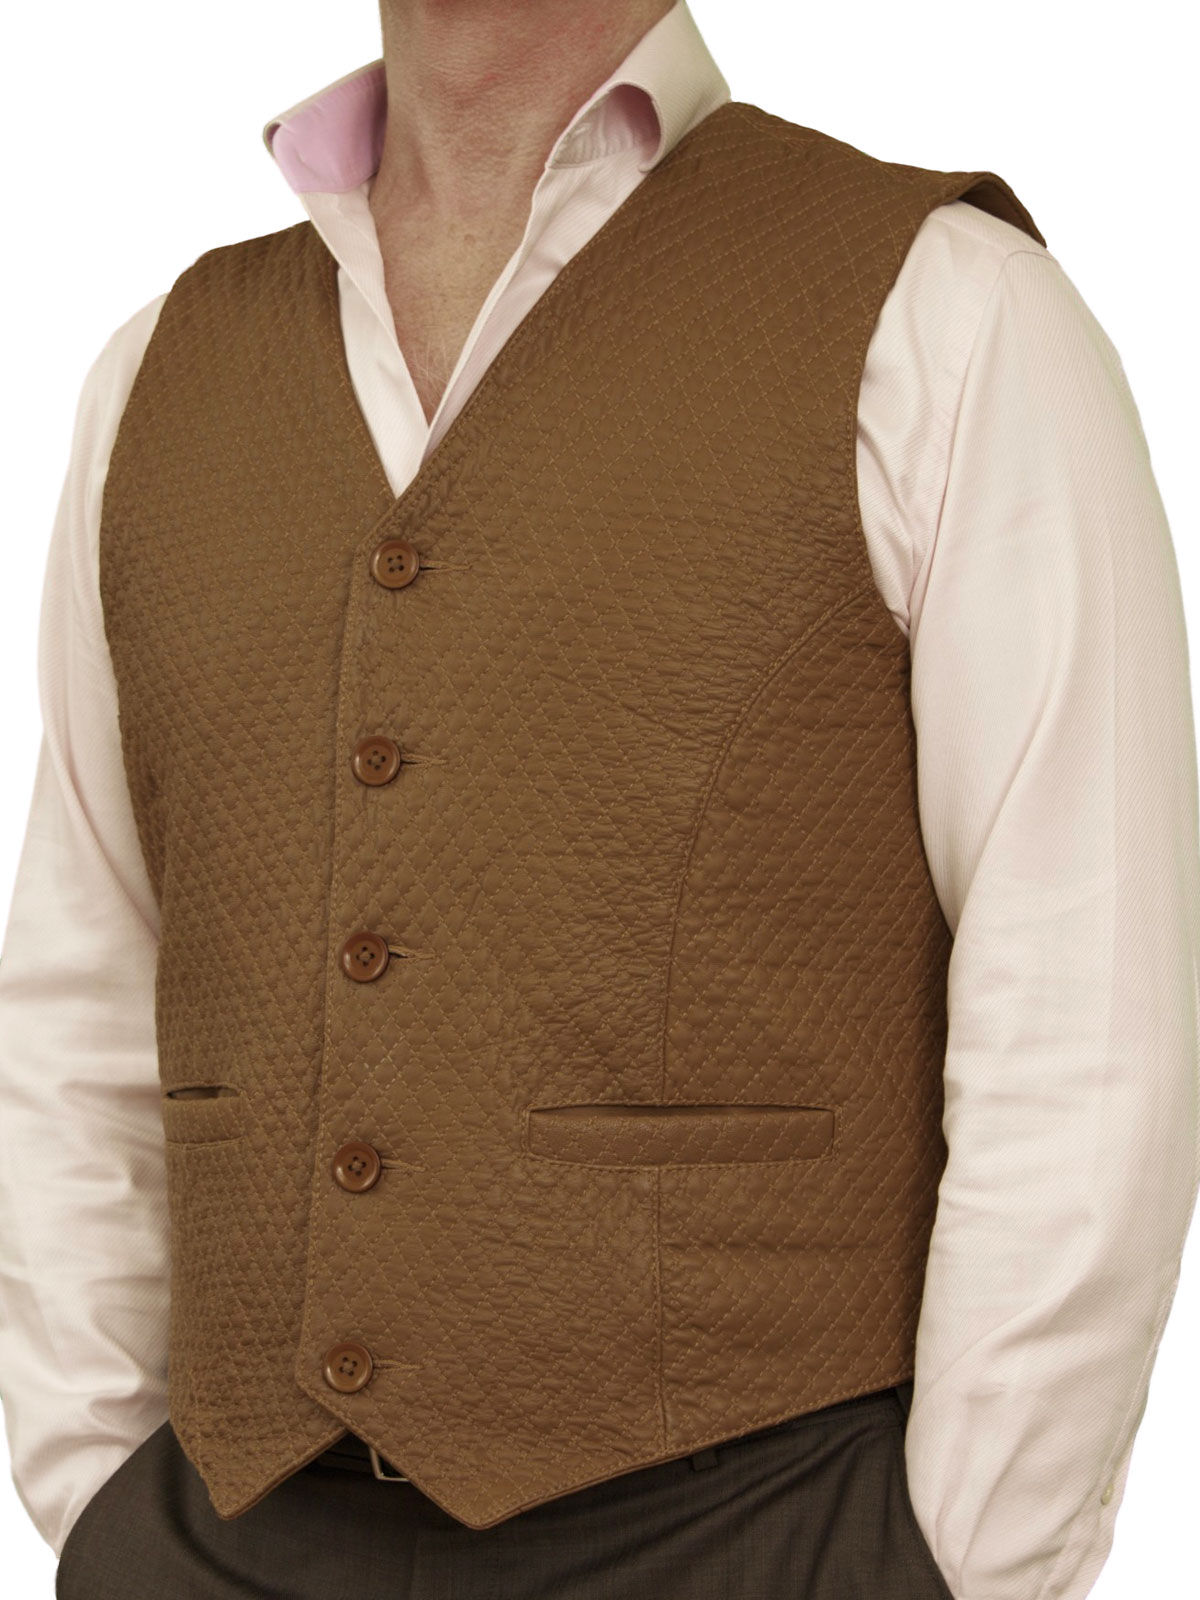 Mens diamond stitch leather waistcoat with back belt tout ensemble